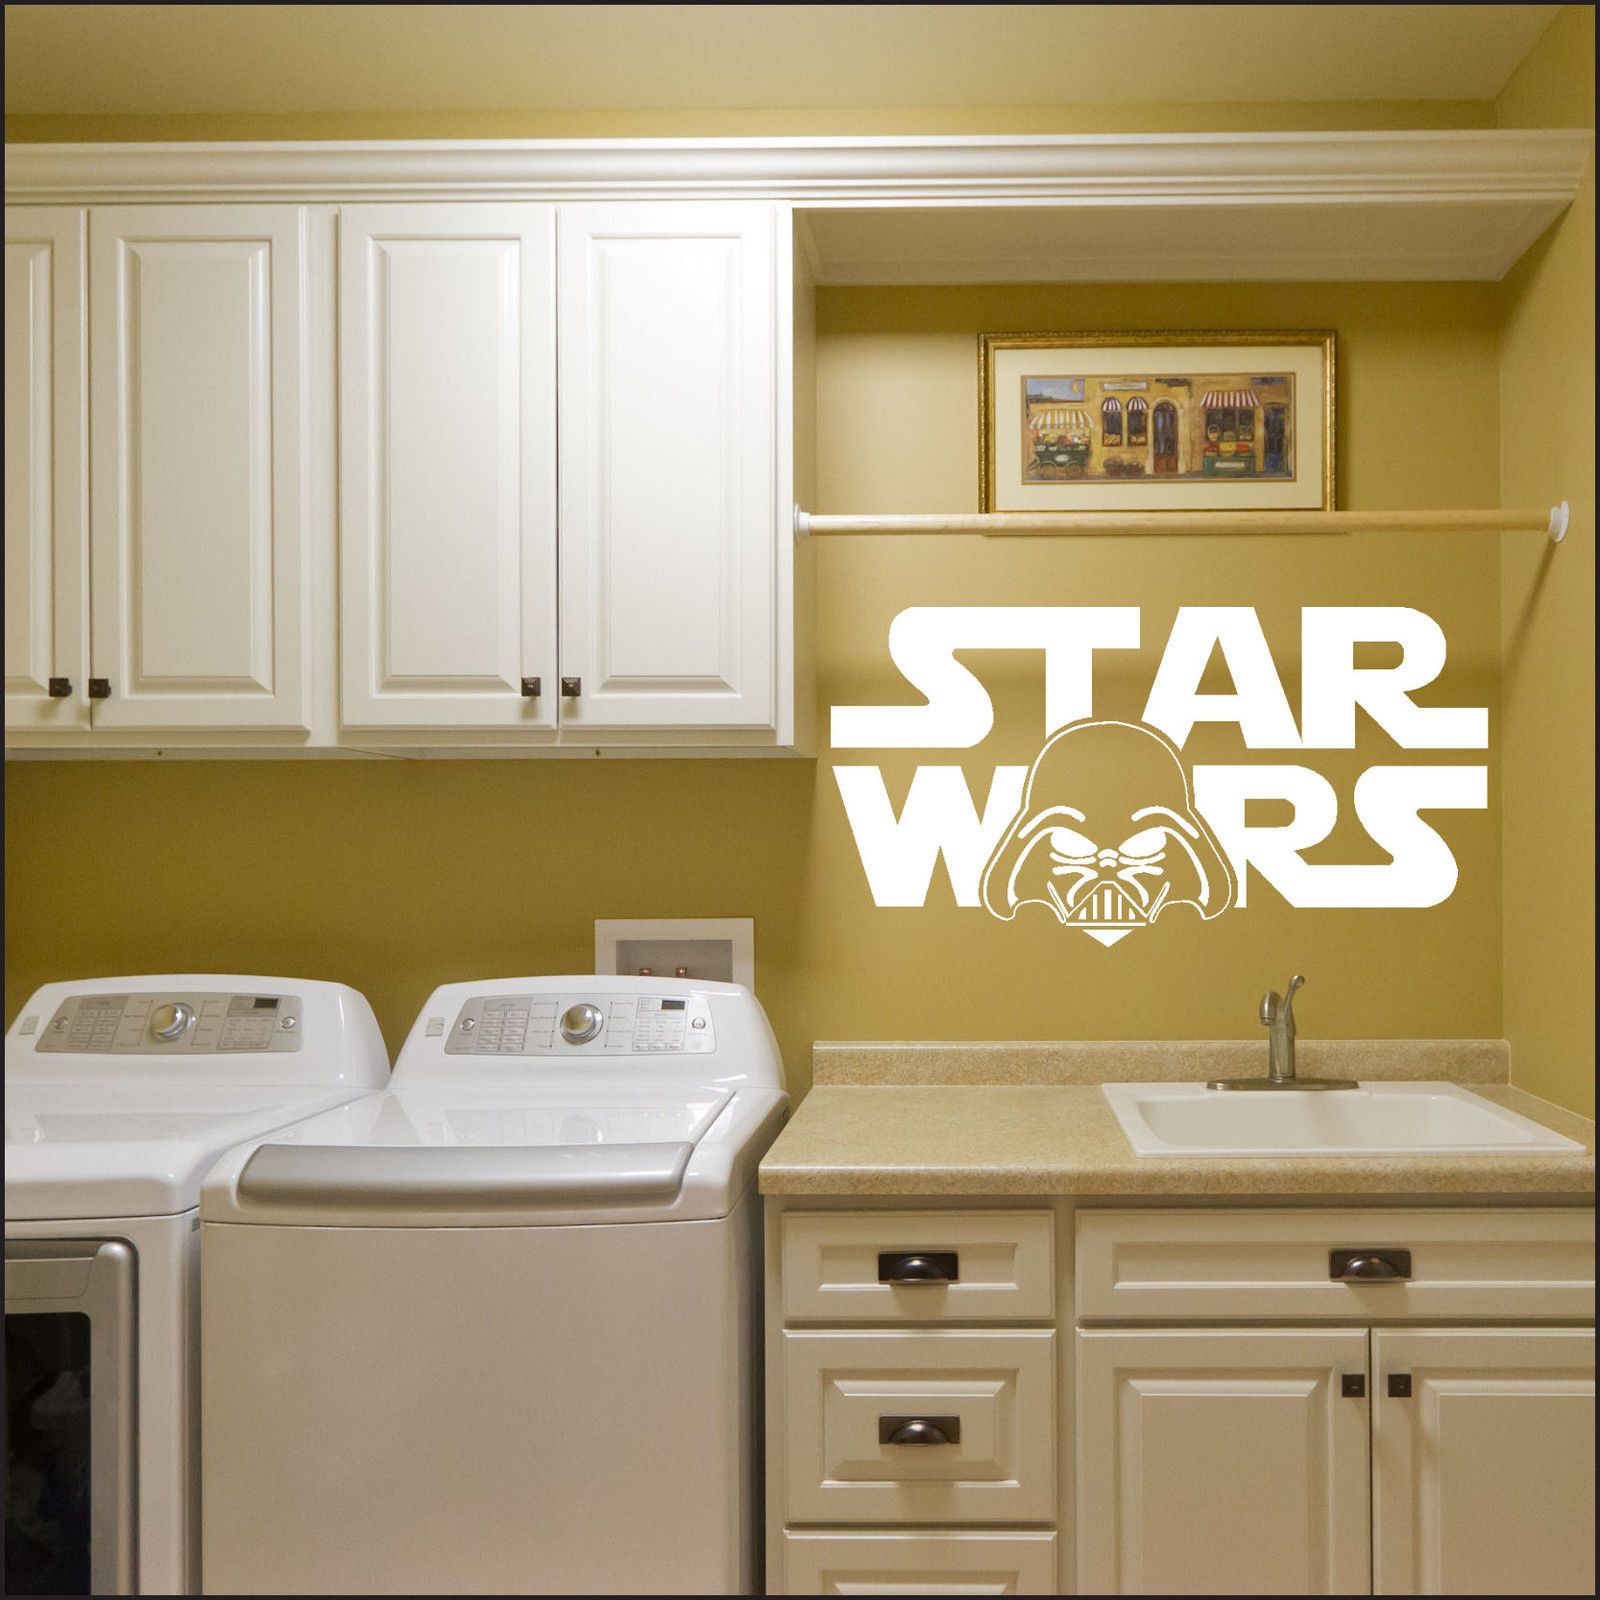 Exelent Star Wars Wall Decorations Picture Collection - Art & Wall ...